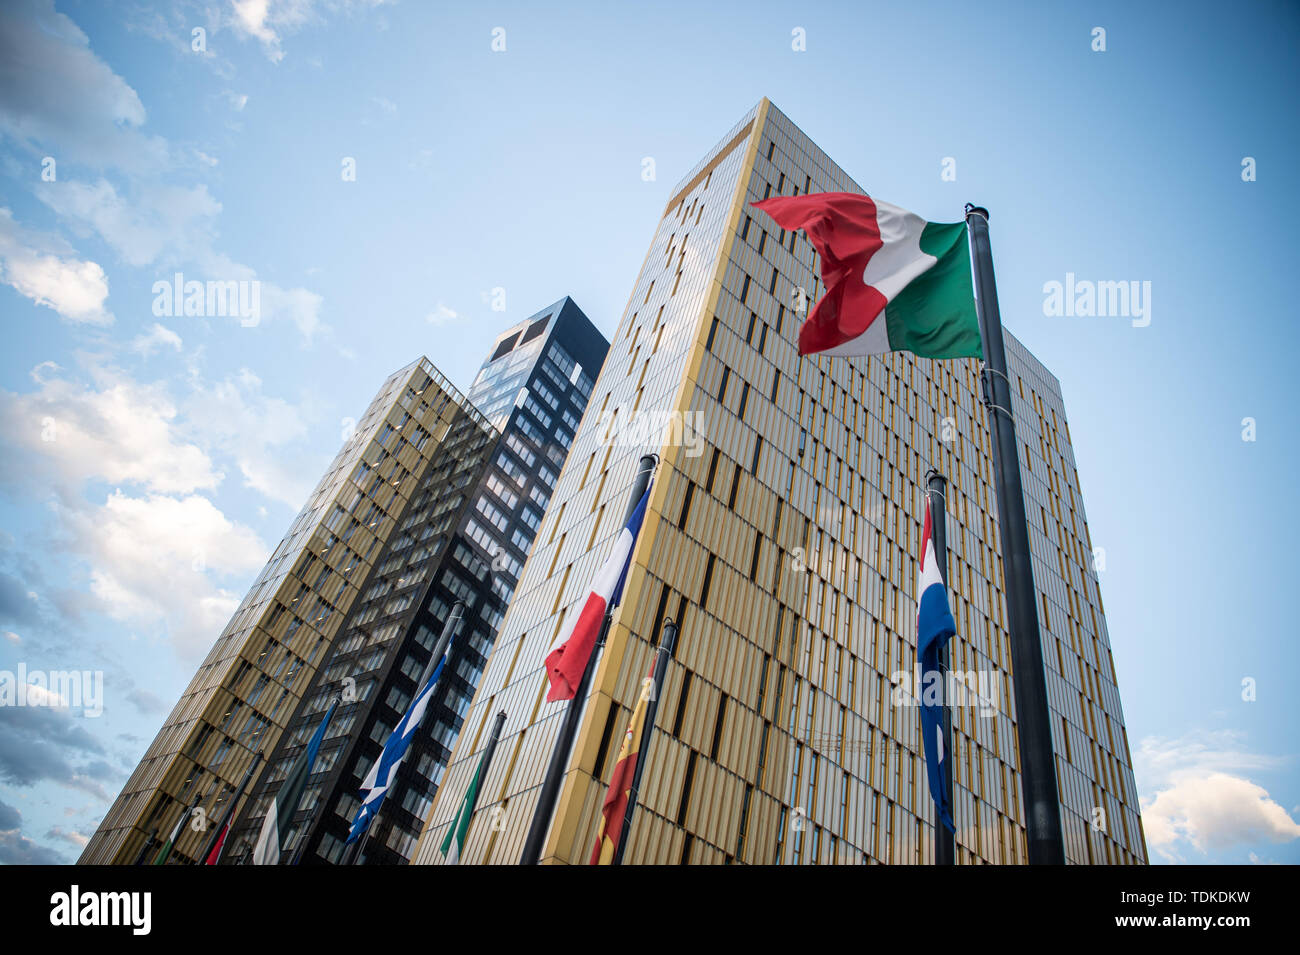 Luxemburg, Luxembourg. 15th June, 2019. Flags fly in the wind in front of the office towers of the European Court of Justice in the Europaviertel on the Kirchberg. Credit: Arne Immanuel Bänsch/dpa/Alamy Live News - Stock Image